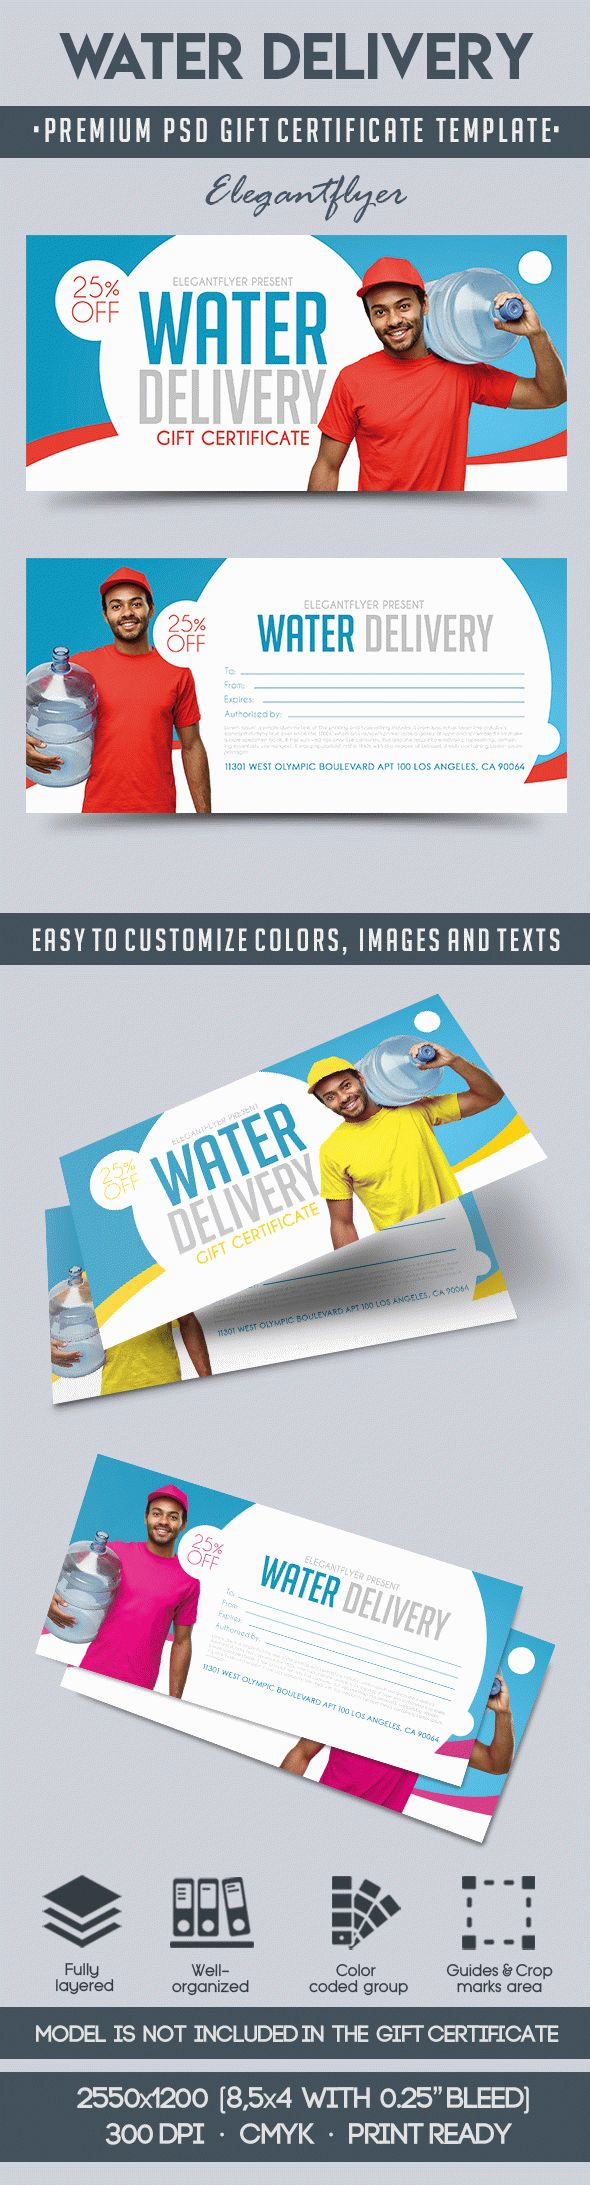 Water Delivery – Premium Gift Certificate PSD Template